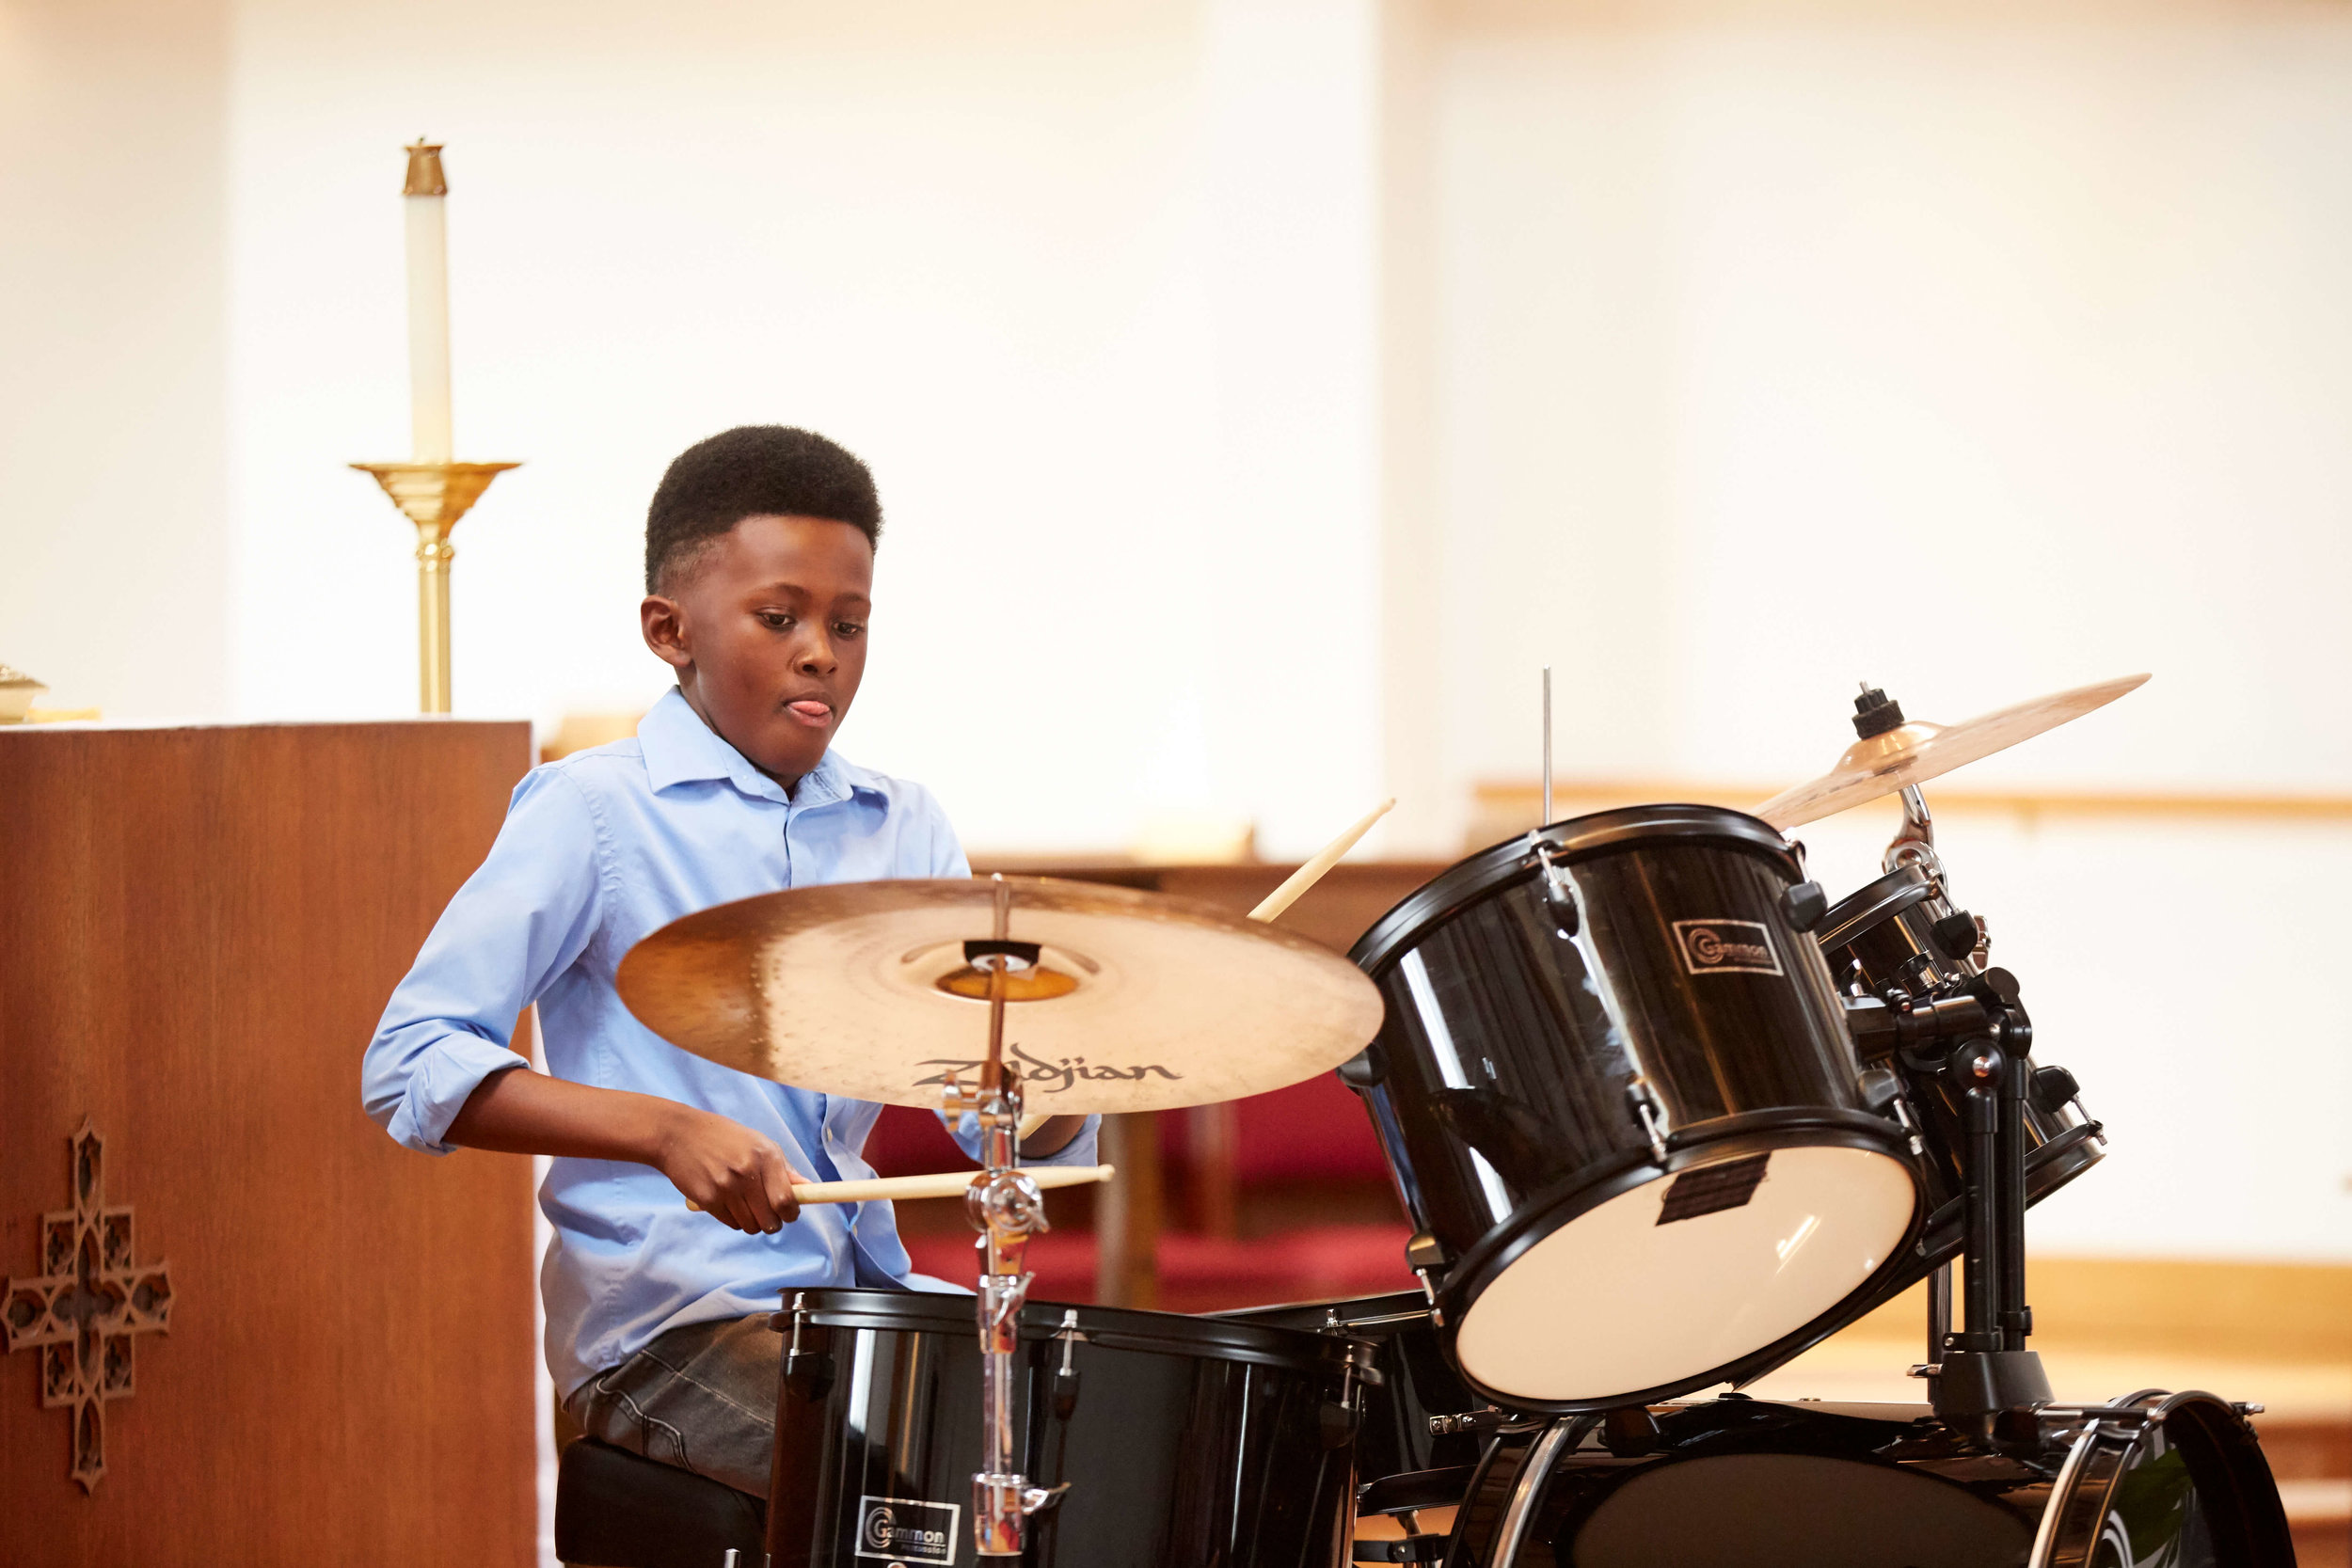 DRUM LESSONS IN CINCINNATI, ANDERSON, & MASON   for beginner, intermediate, and advanced students of all ages  CALL 513-560-9175 TODAY TO SCHEDULE YOUR FIRST LESSON   Request Info